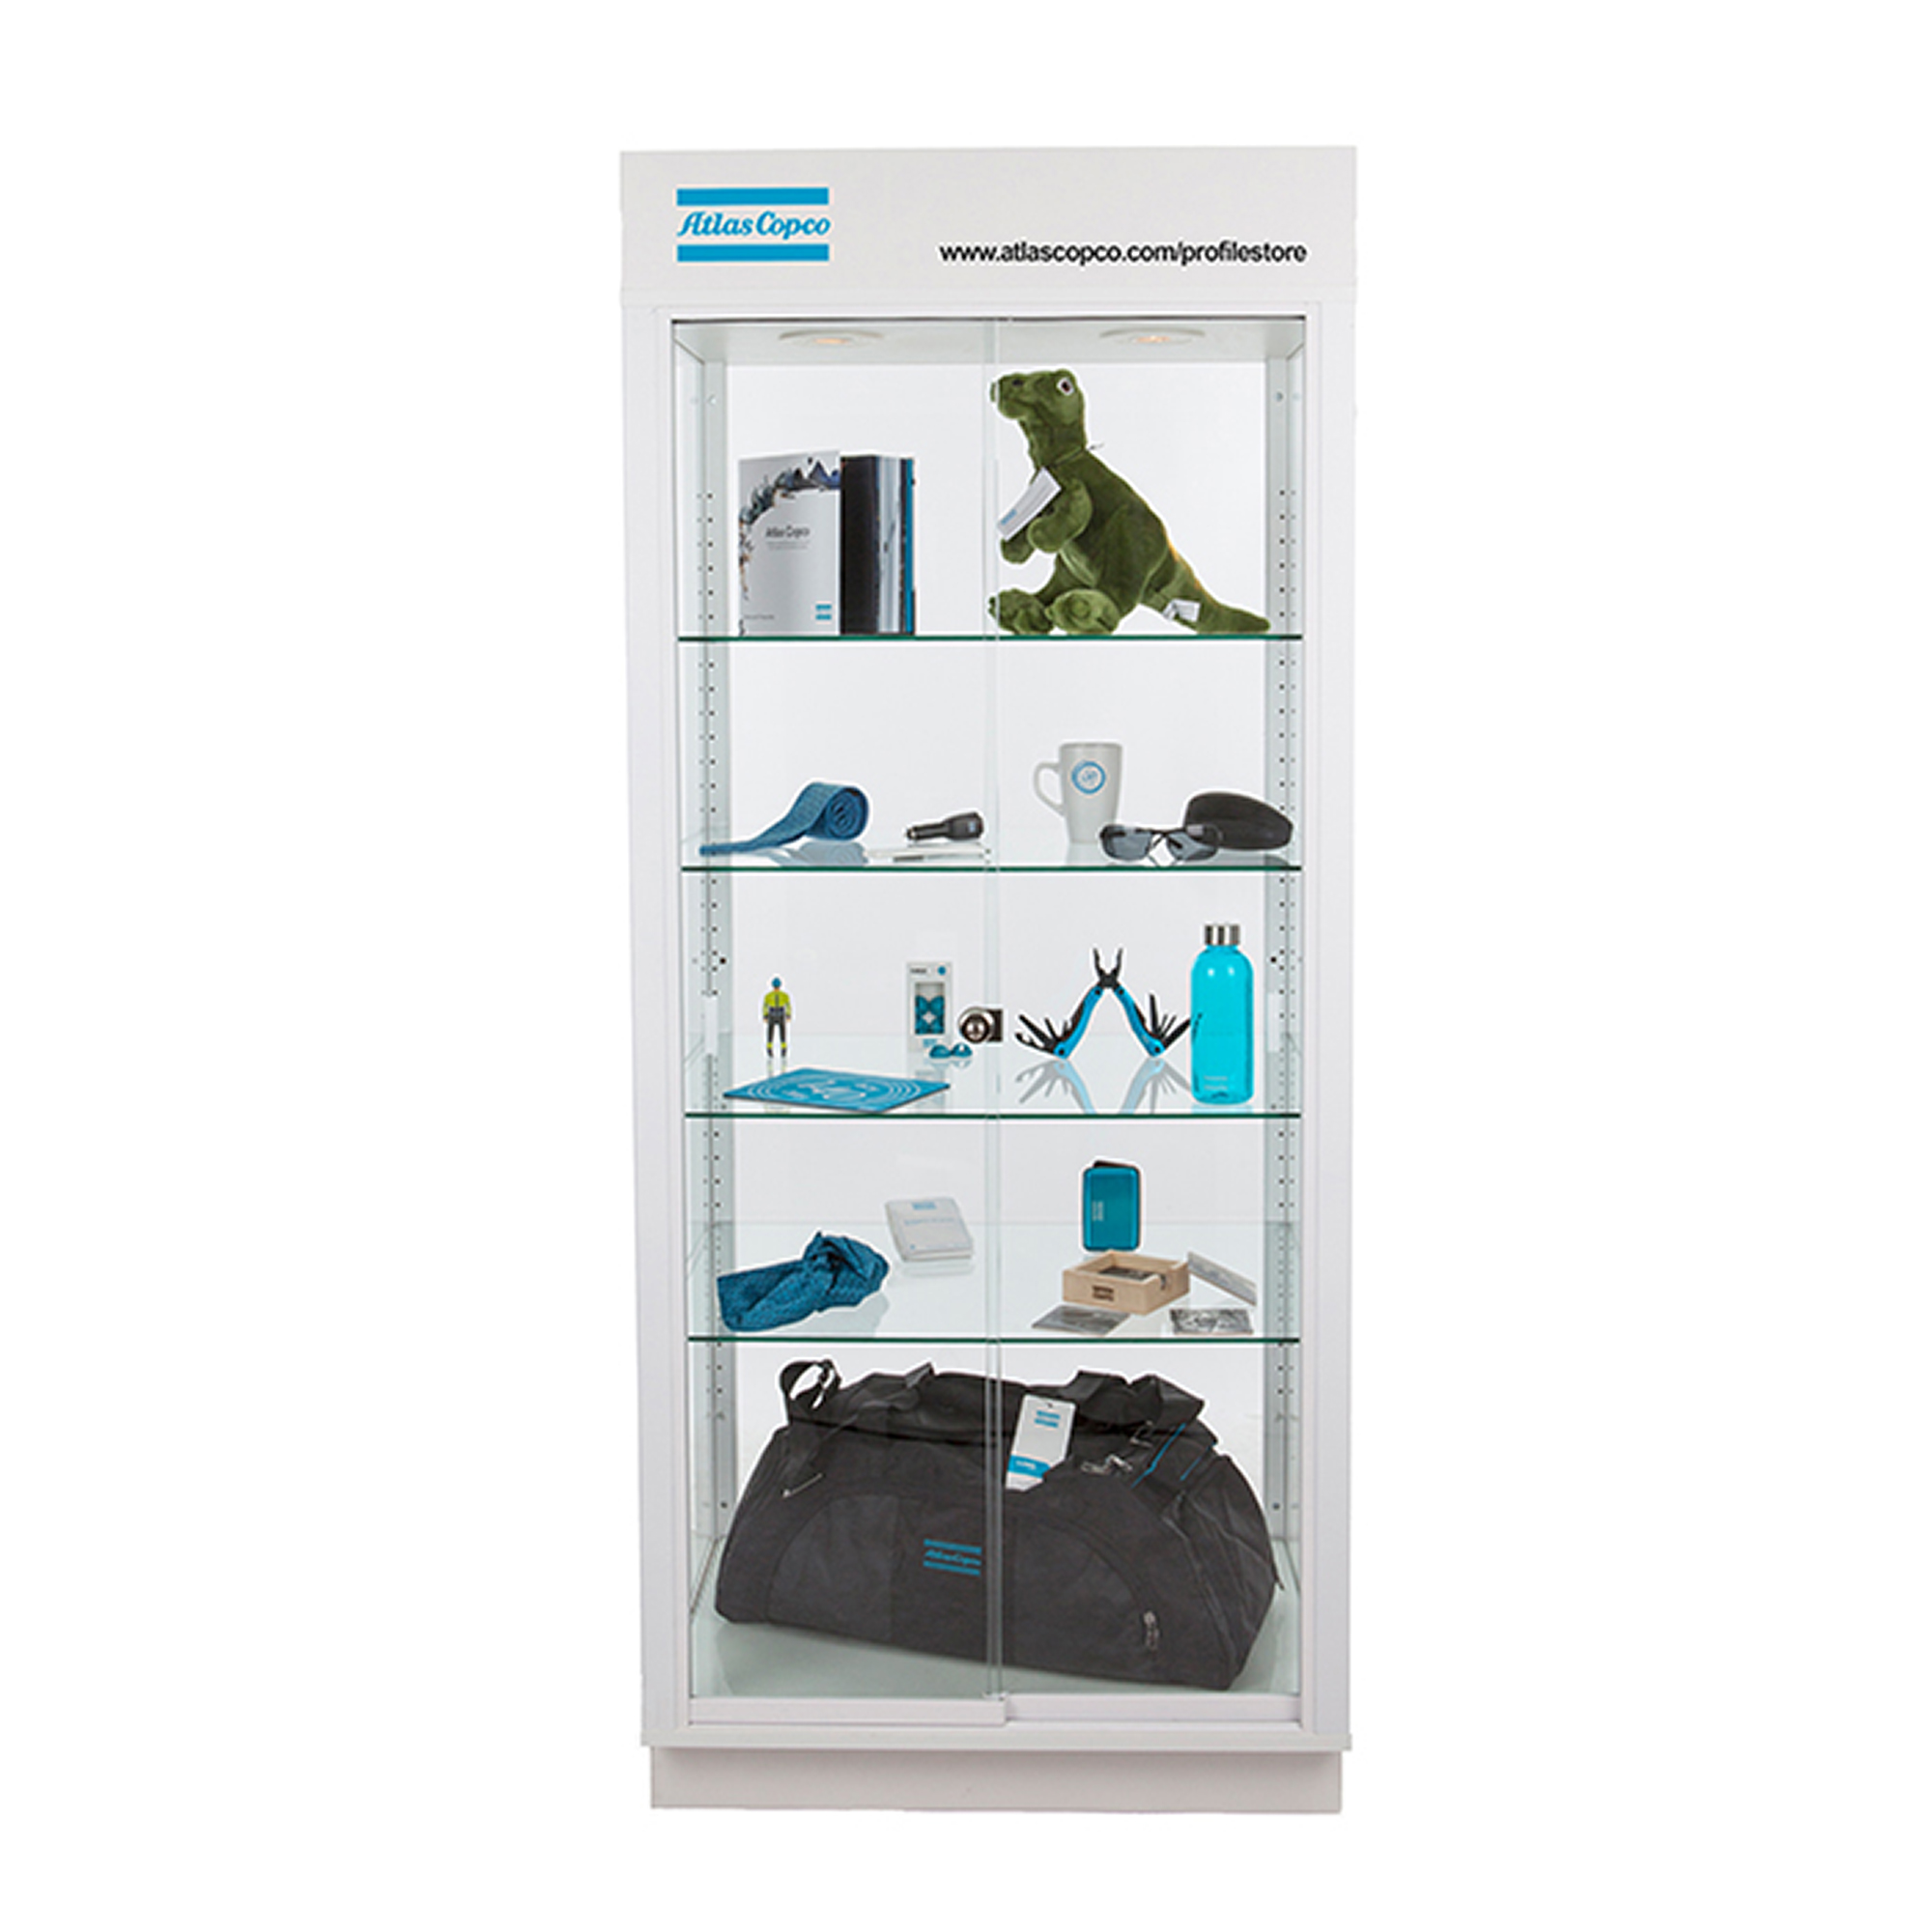 Fitted with lockable sliding doors and 4 adjustable glass shelves. Two halogen spots ensure focus is placed on display products. The case is mounted and ready to use immediately following delivery. Delivered without products. Please note, we are unable to combine shipment of displays with other products at Profile Store.